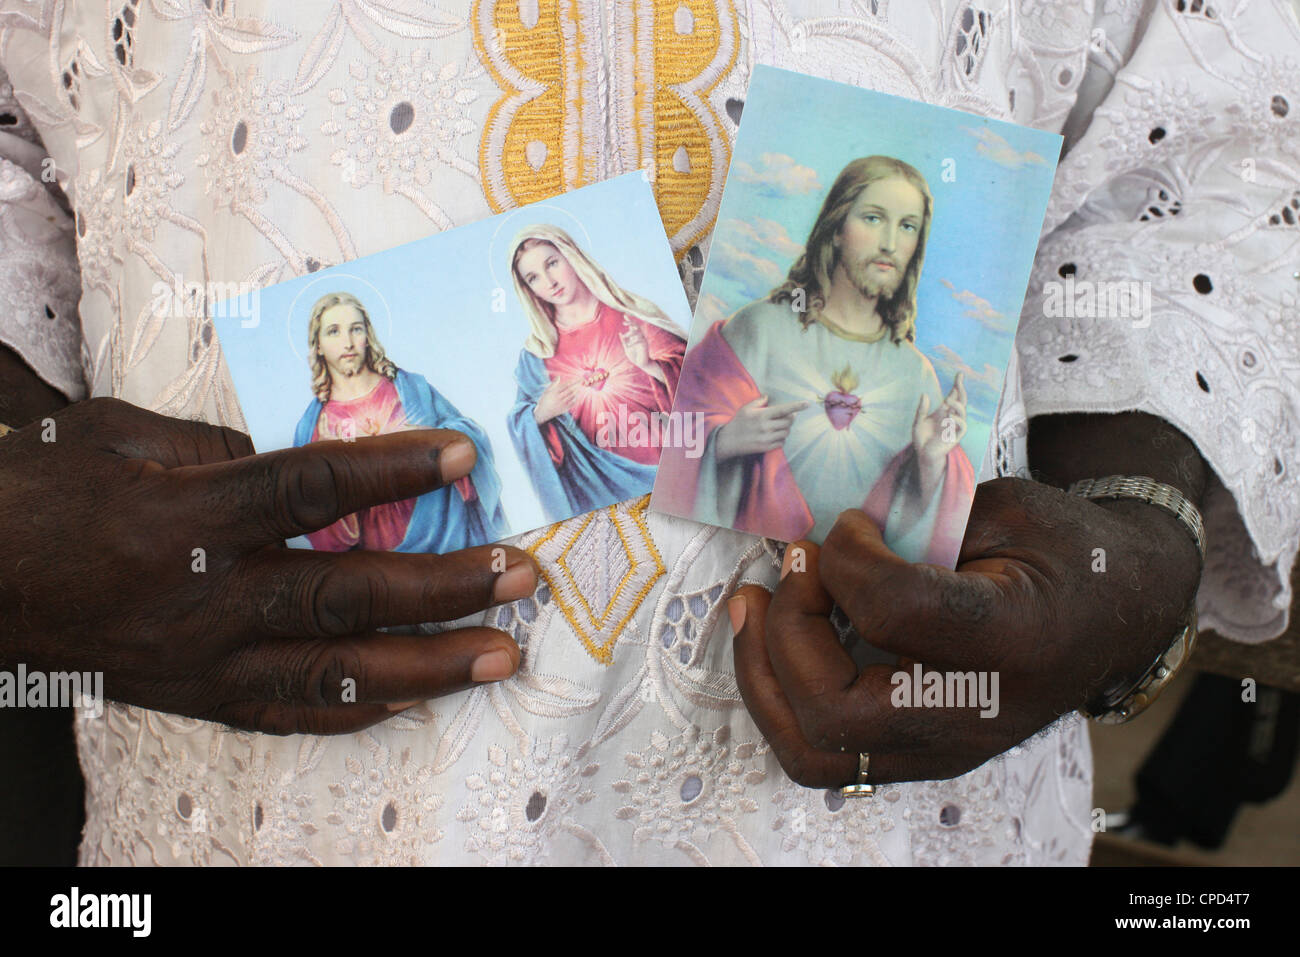 Religious images of Christ and Mary, Lome, Togo, West Africa, Africa - Stock Image